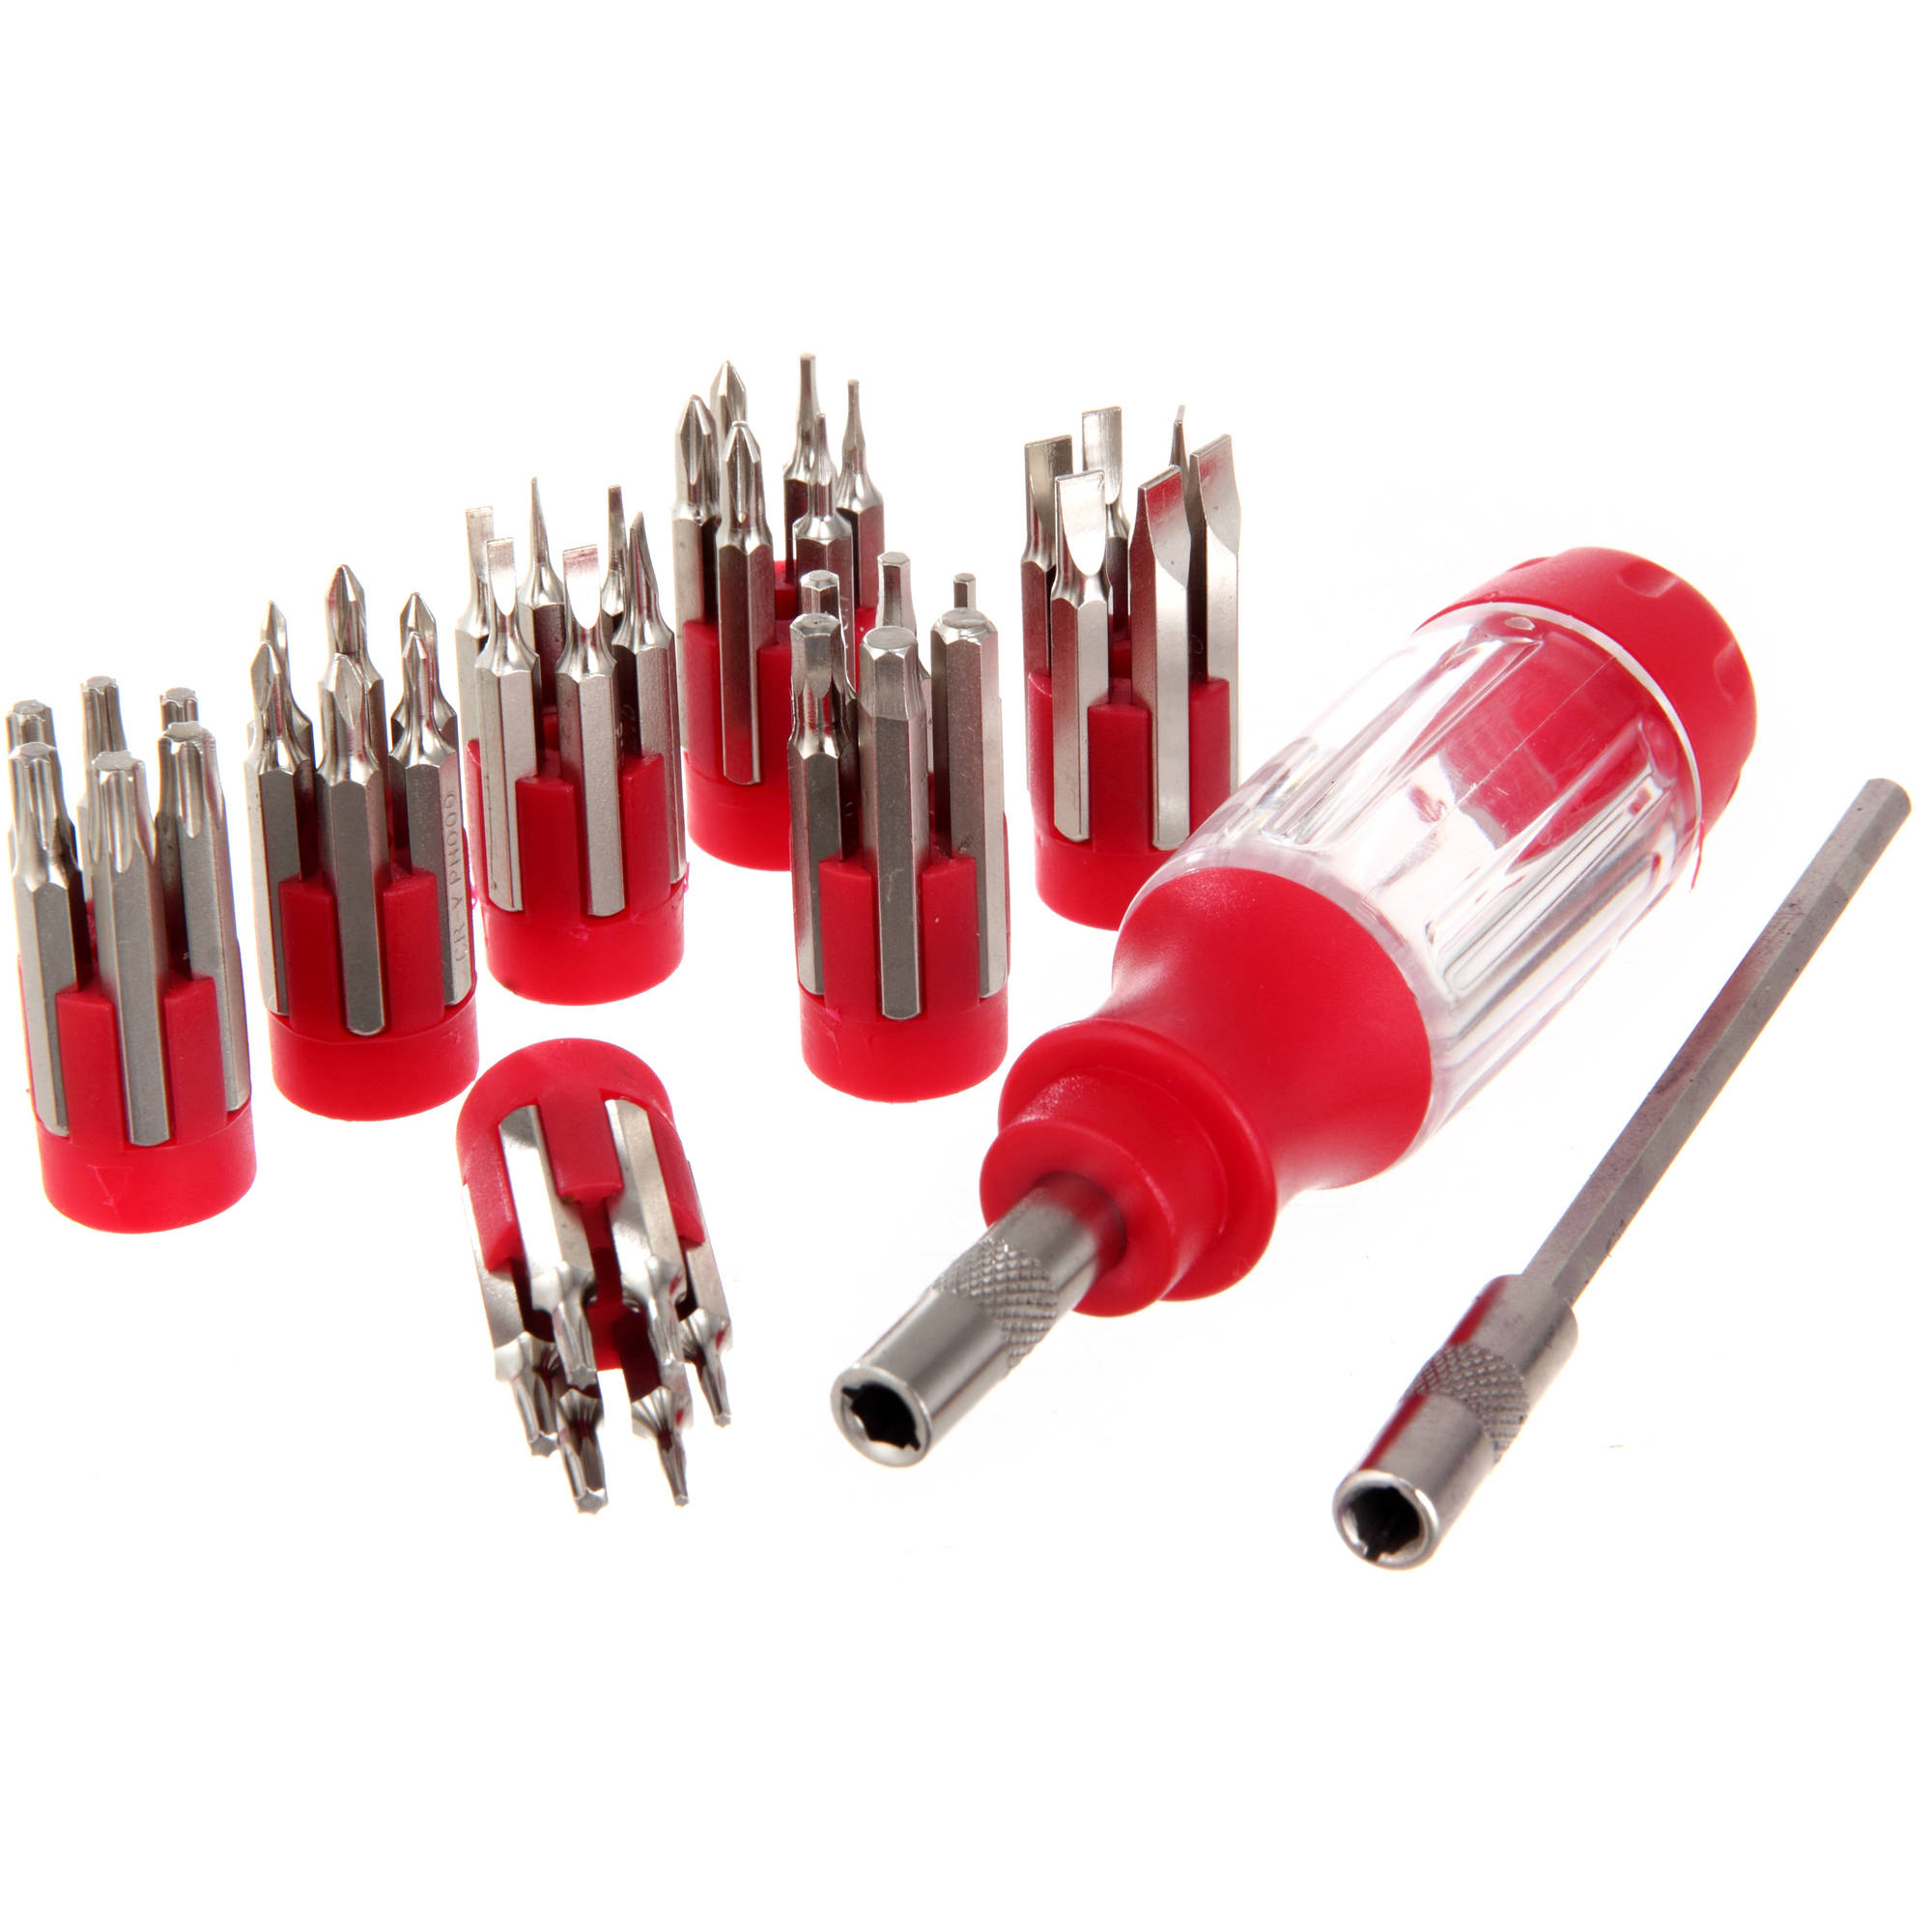 Hyper Tough TS99818A 44-Piece Precision Screwdriver Set with Case